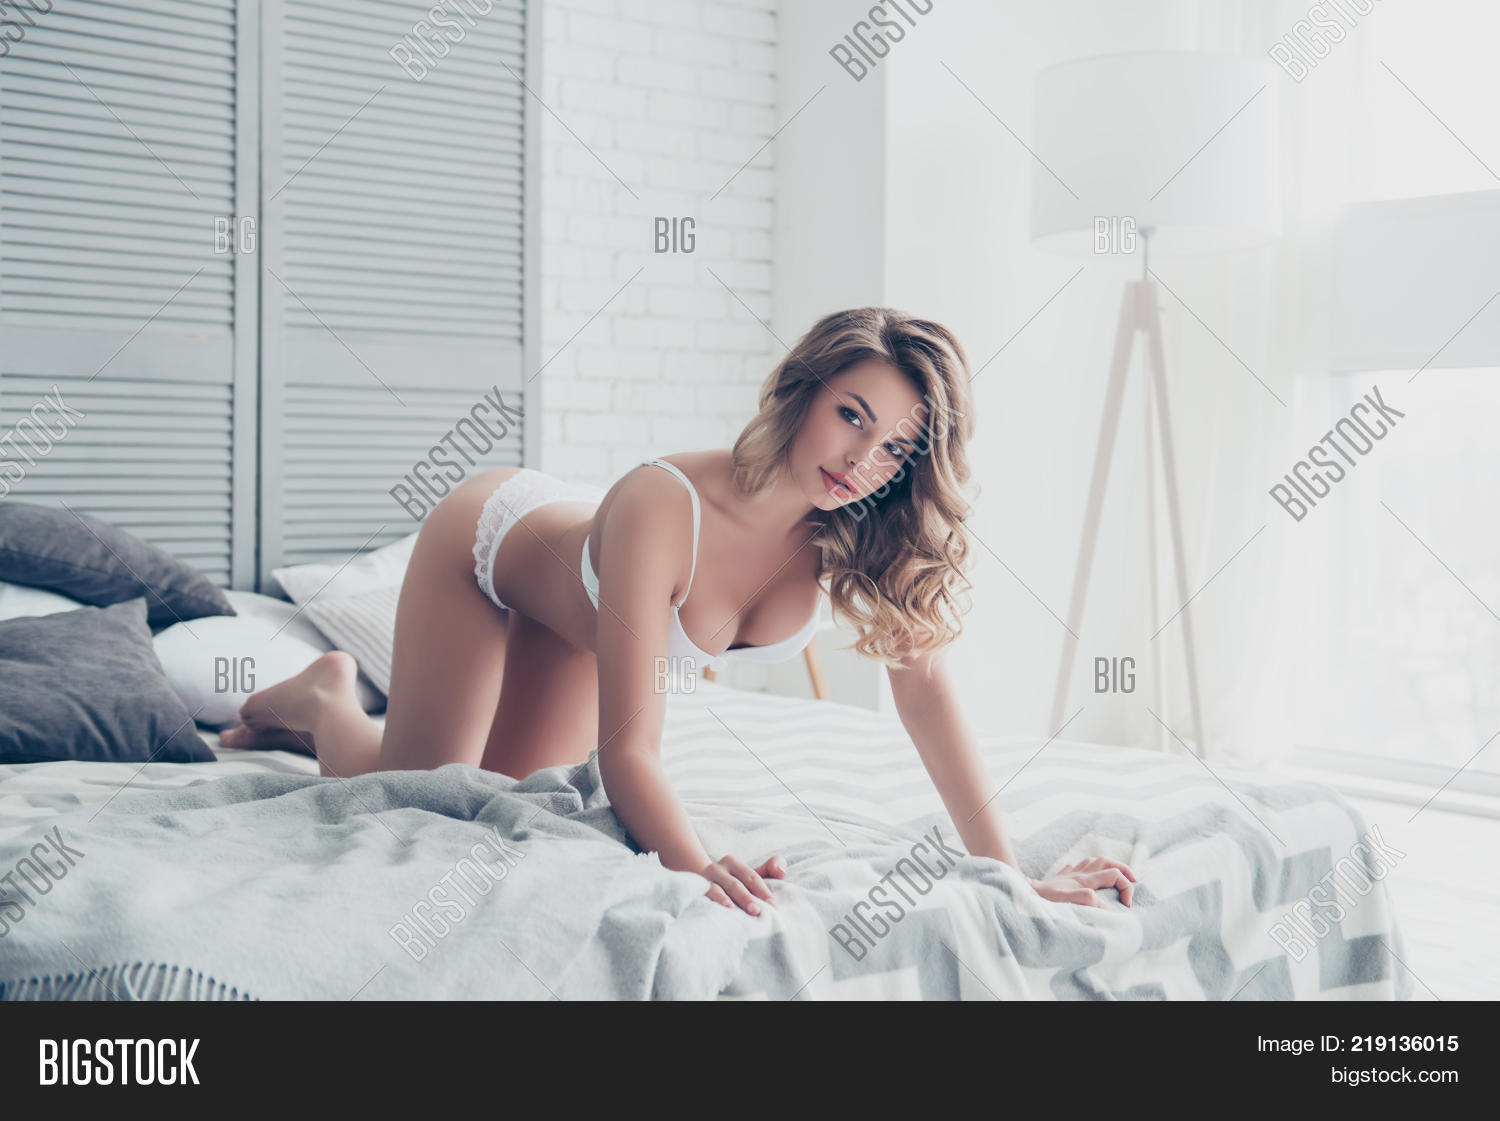 Perfect Ass Doggy Style